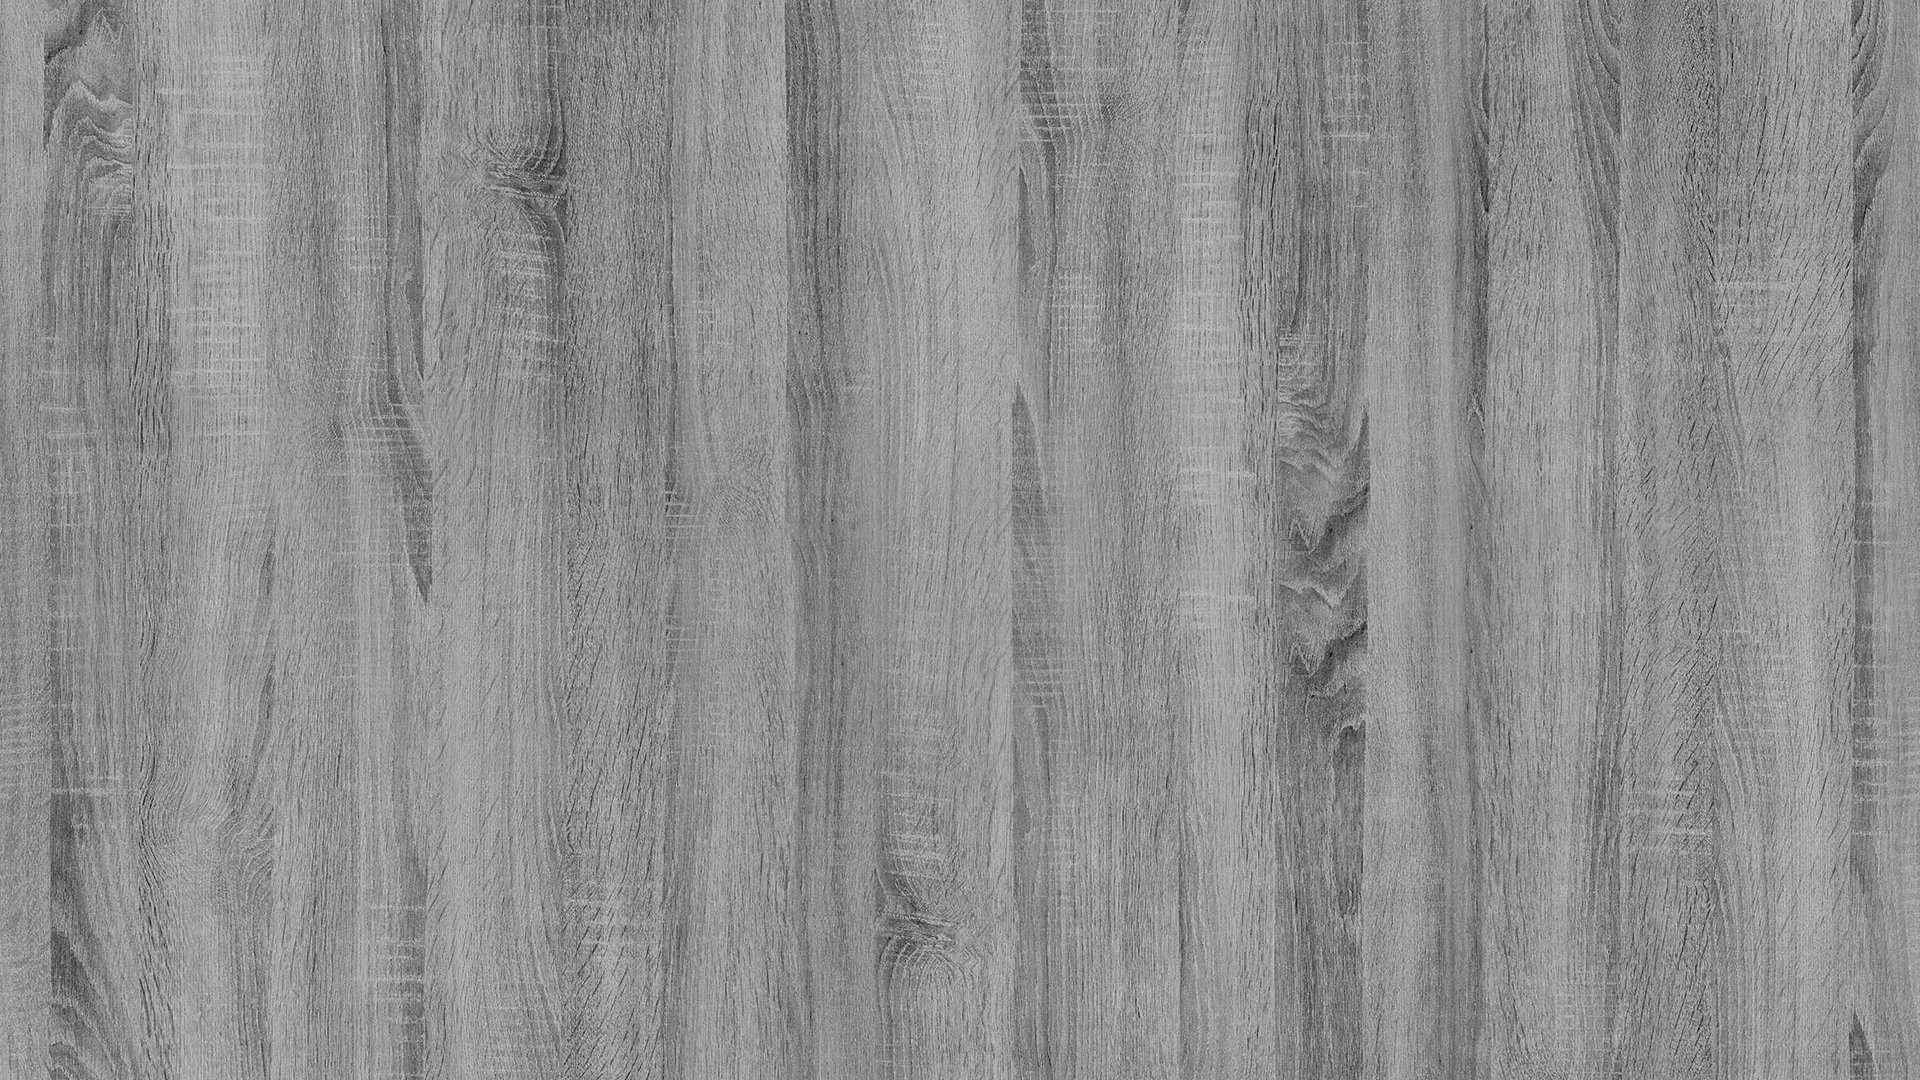 Oak Wood Texture Flyingarchitecture